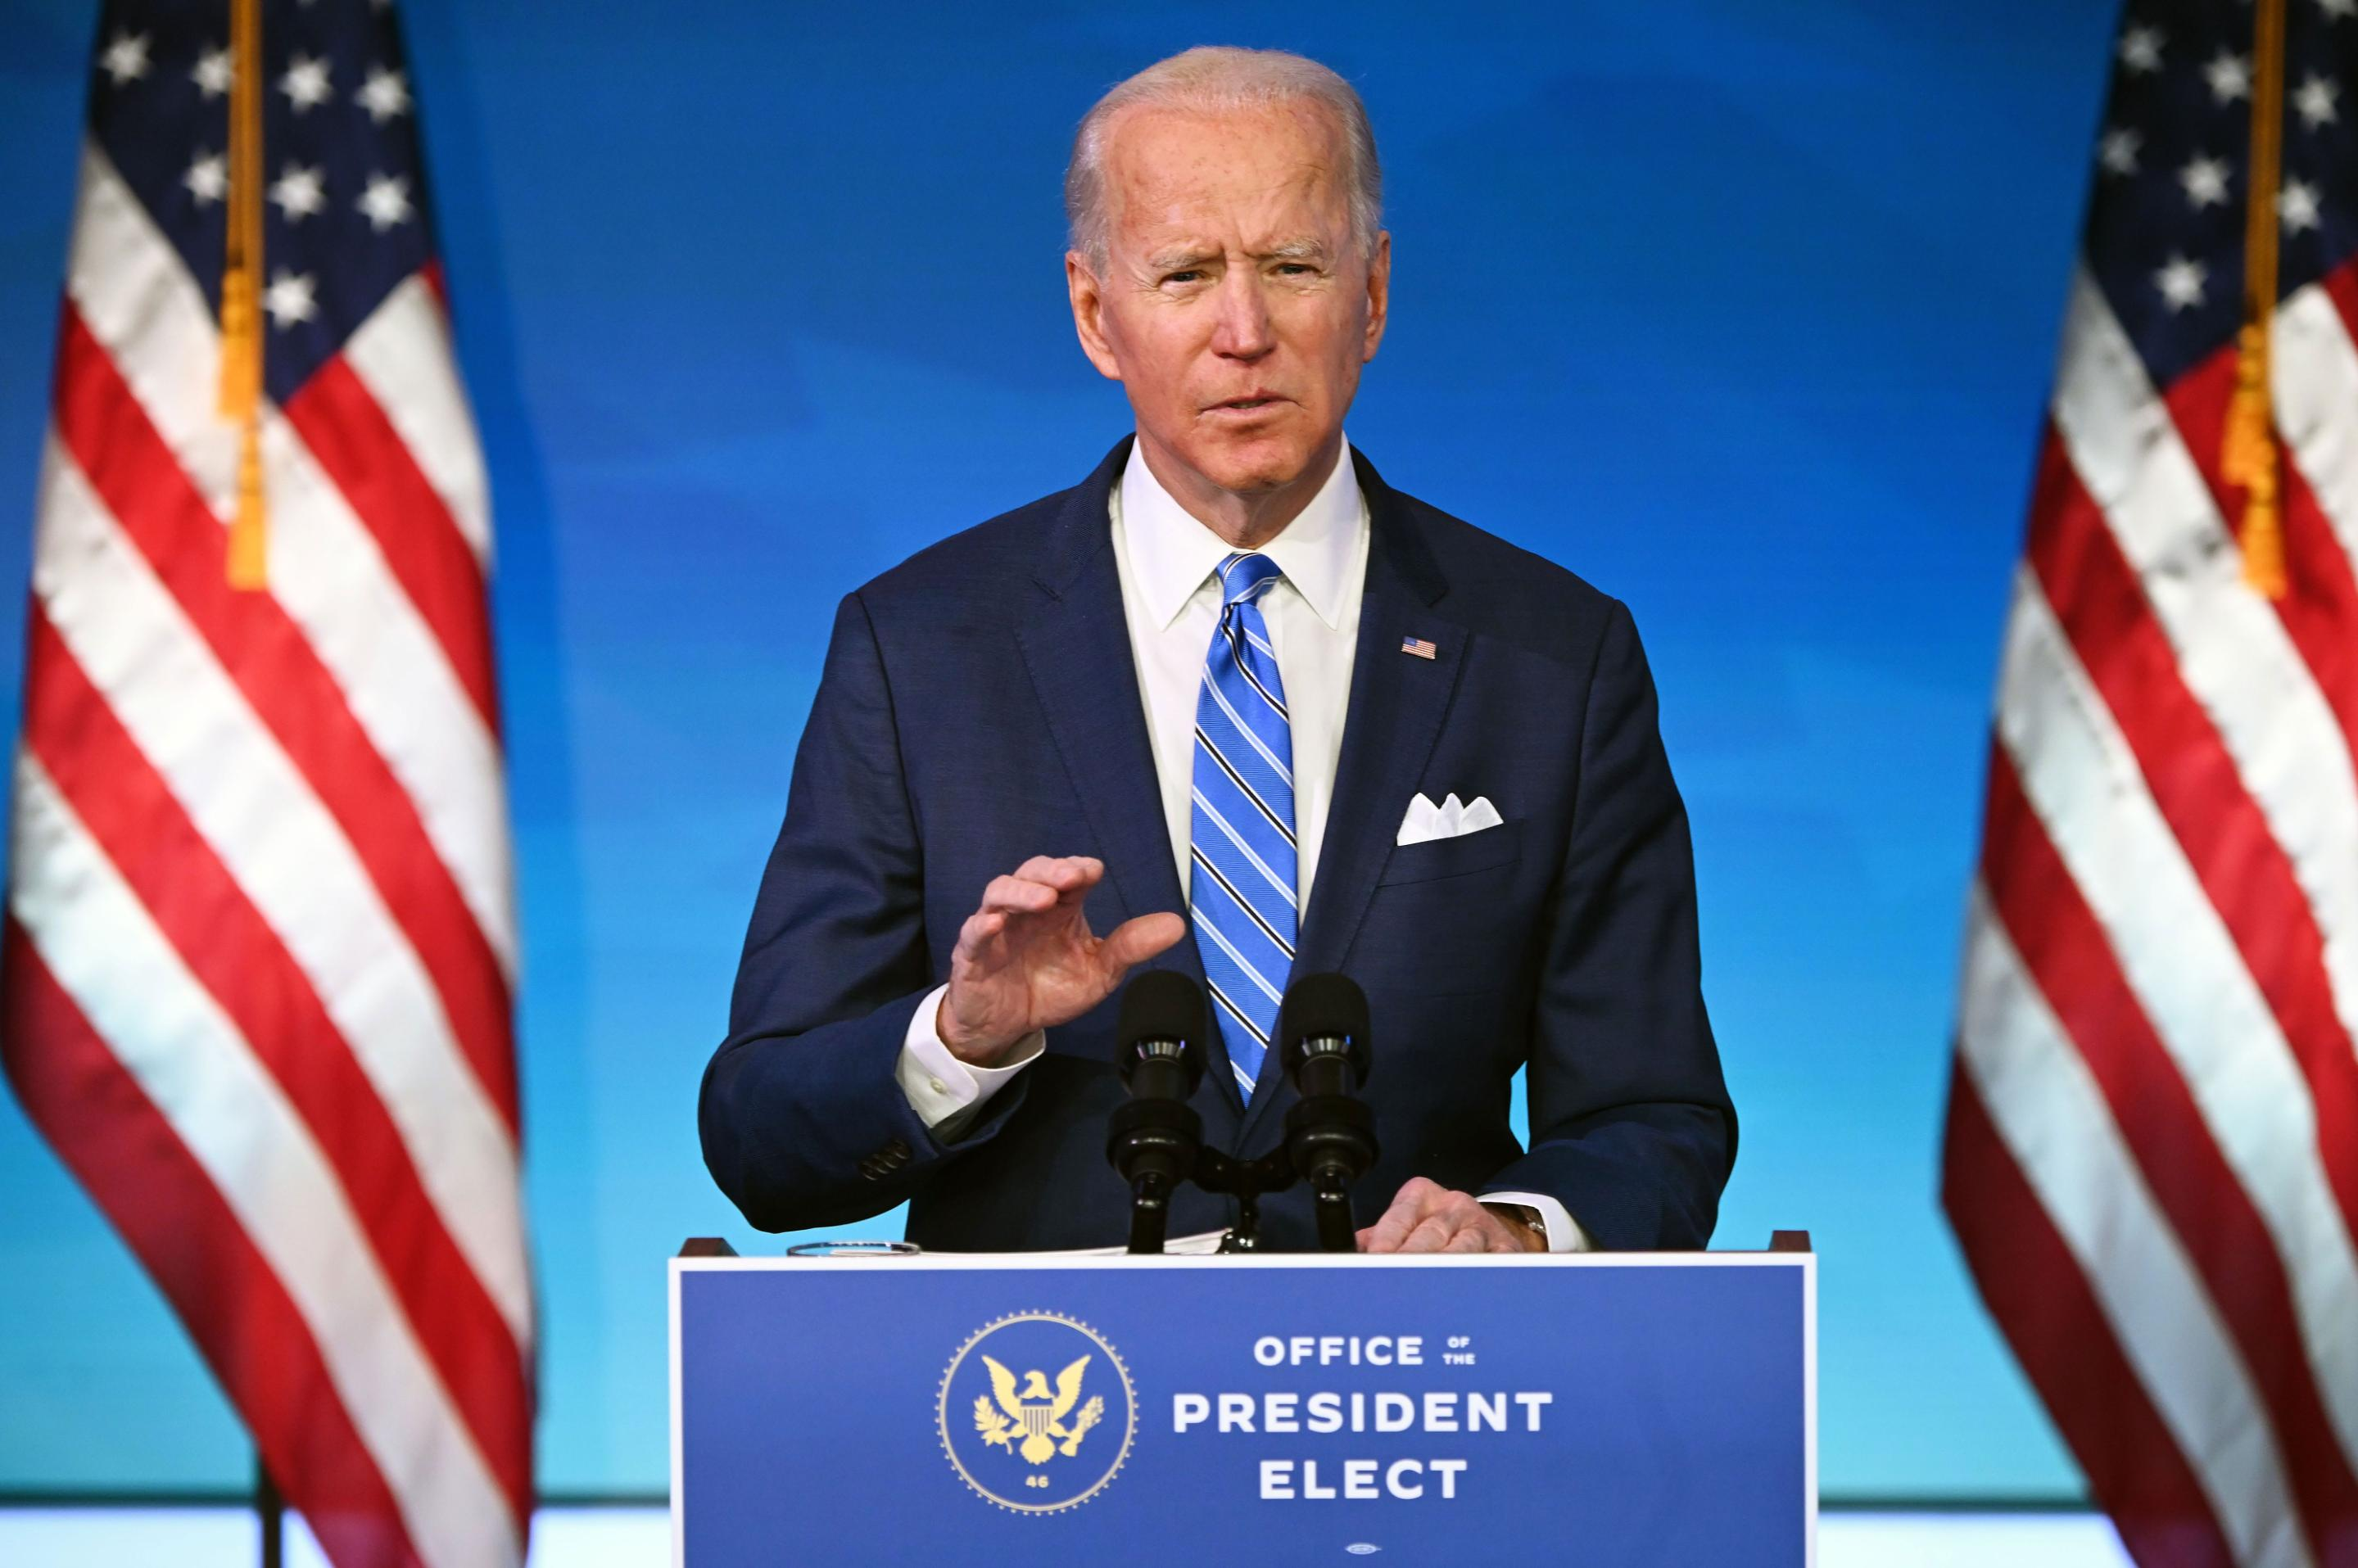 Joe Biden's proposed stimulus checks are a lousy way to fix the economy